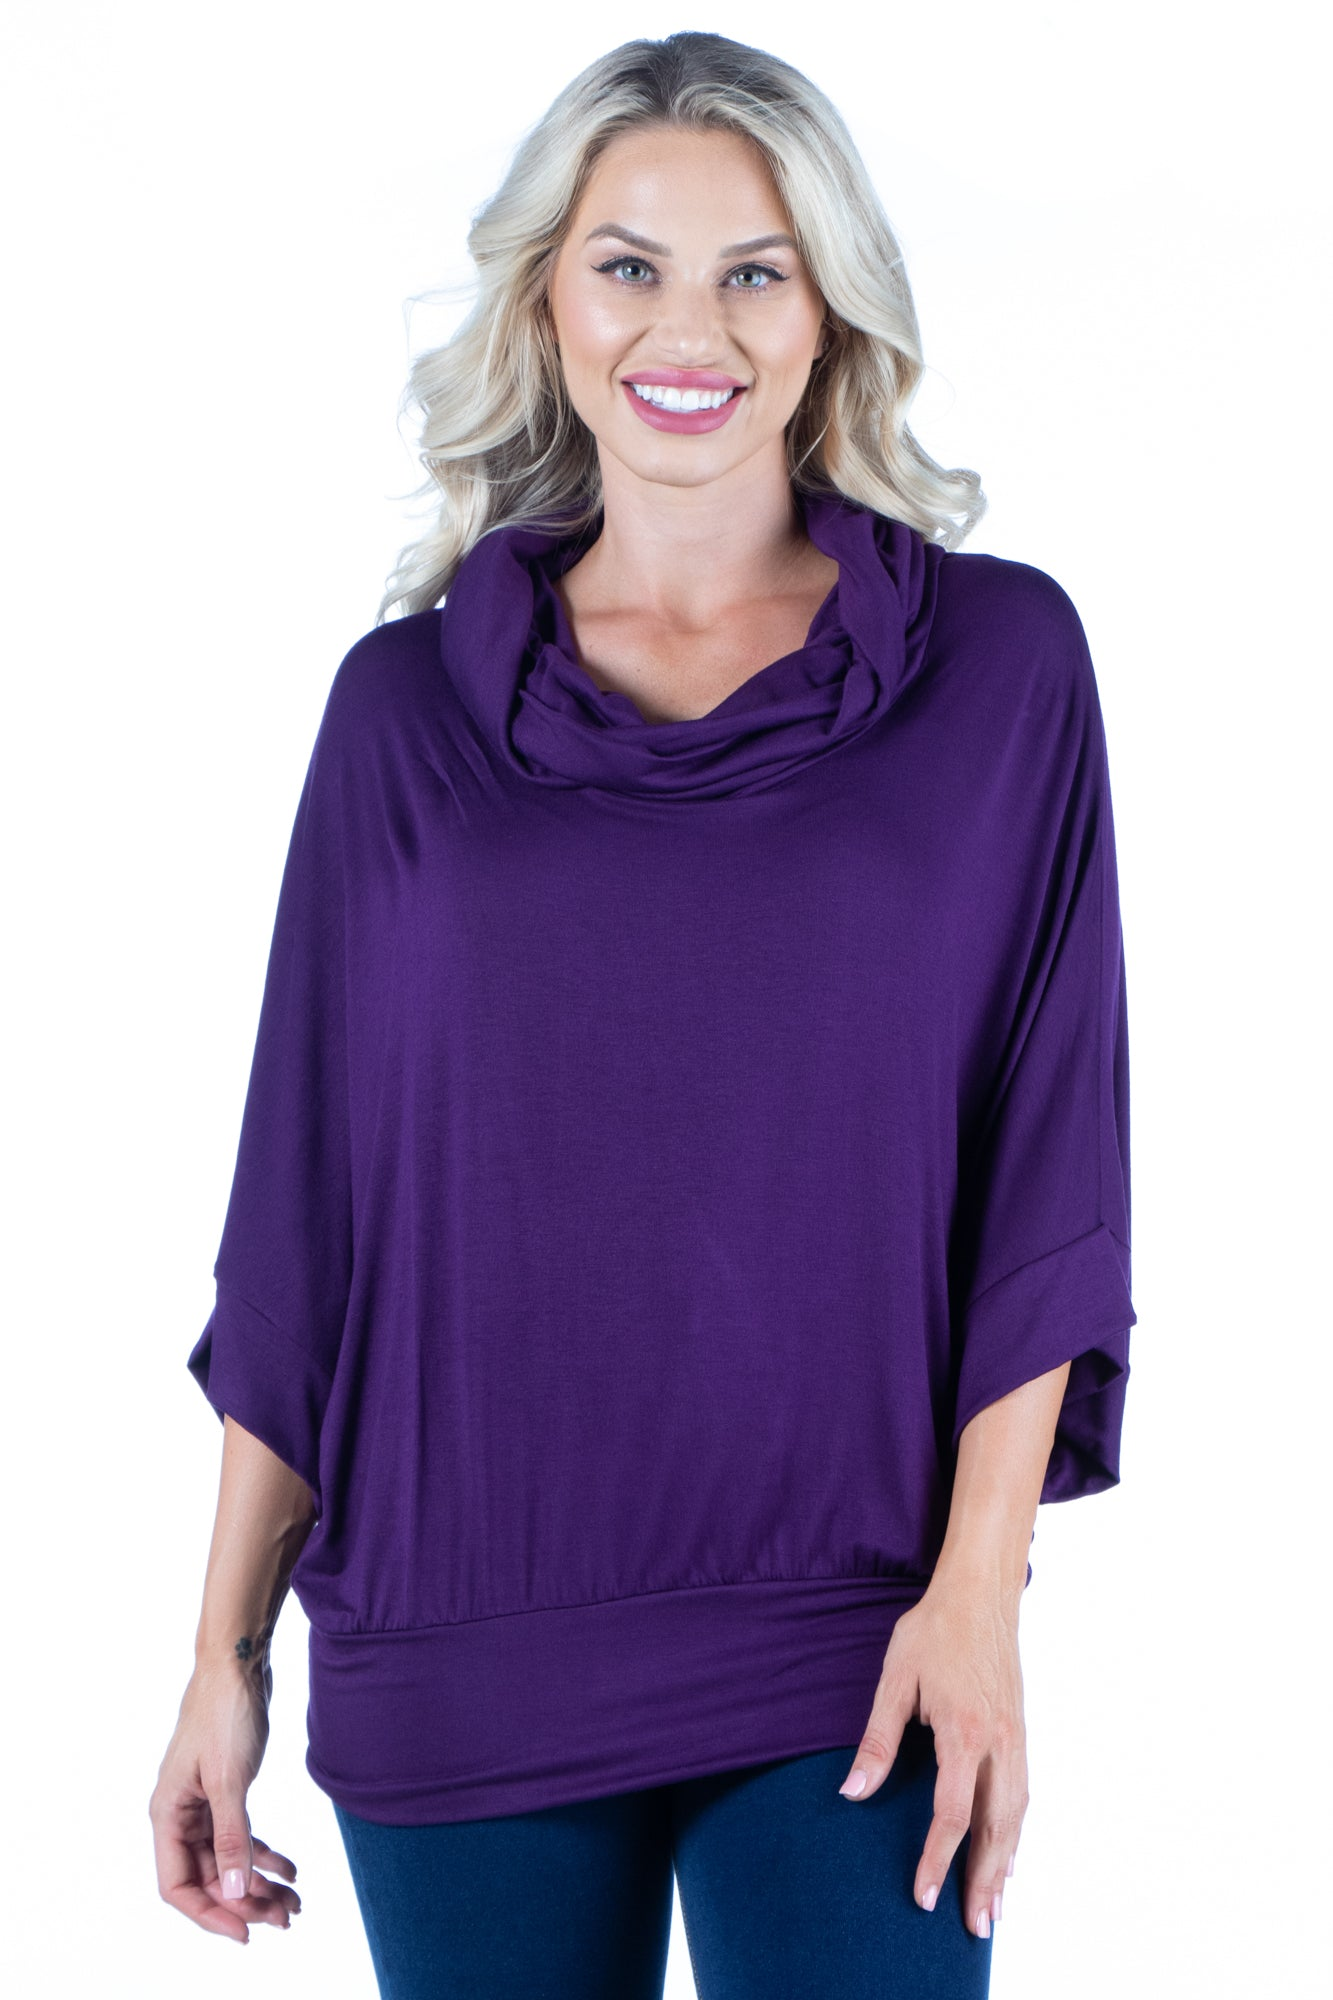 24seven Comfort Apparel Oversized Cowl Neck Tunic Top